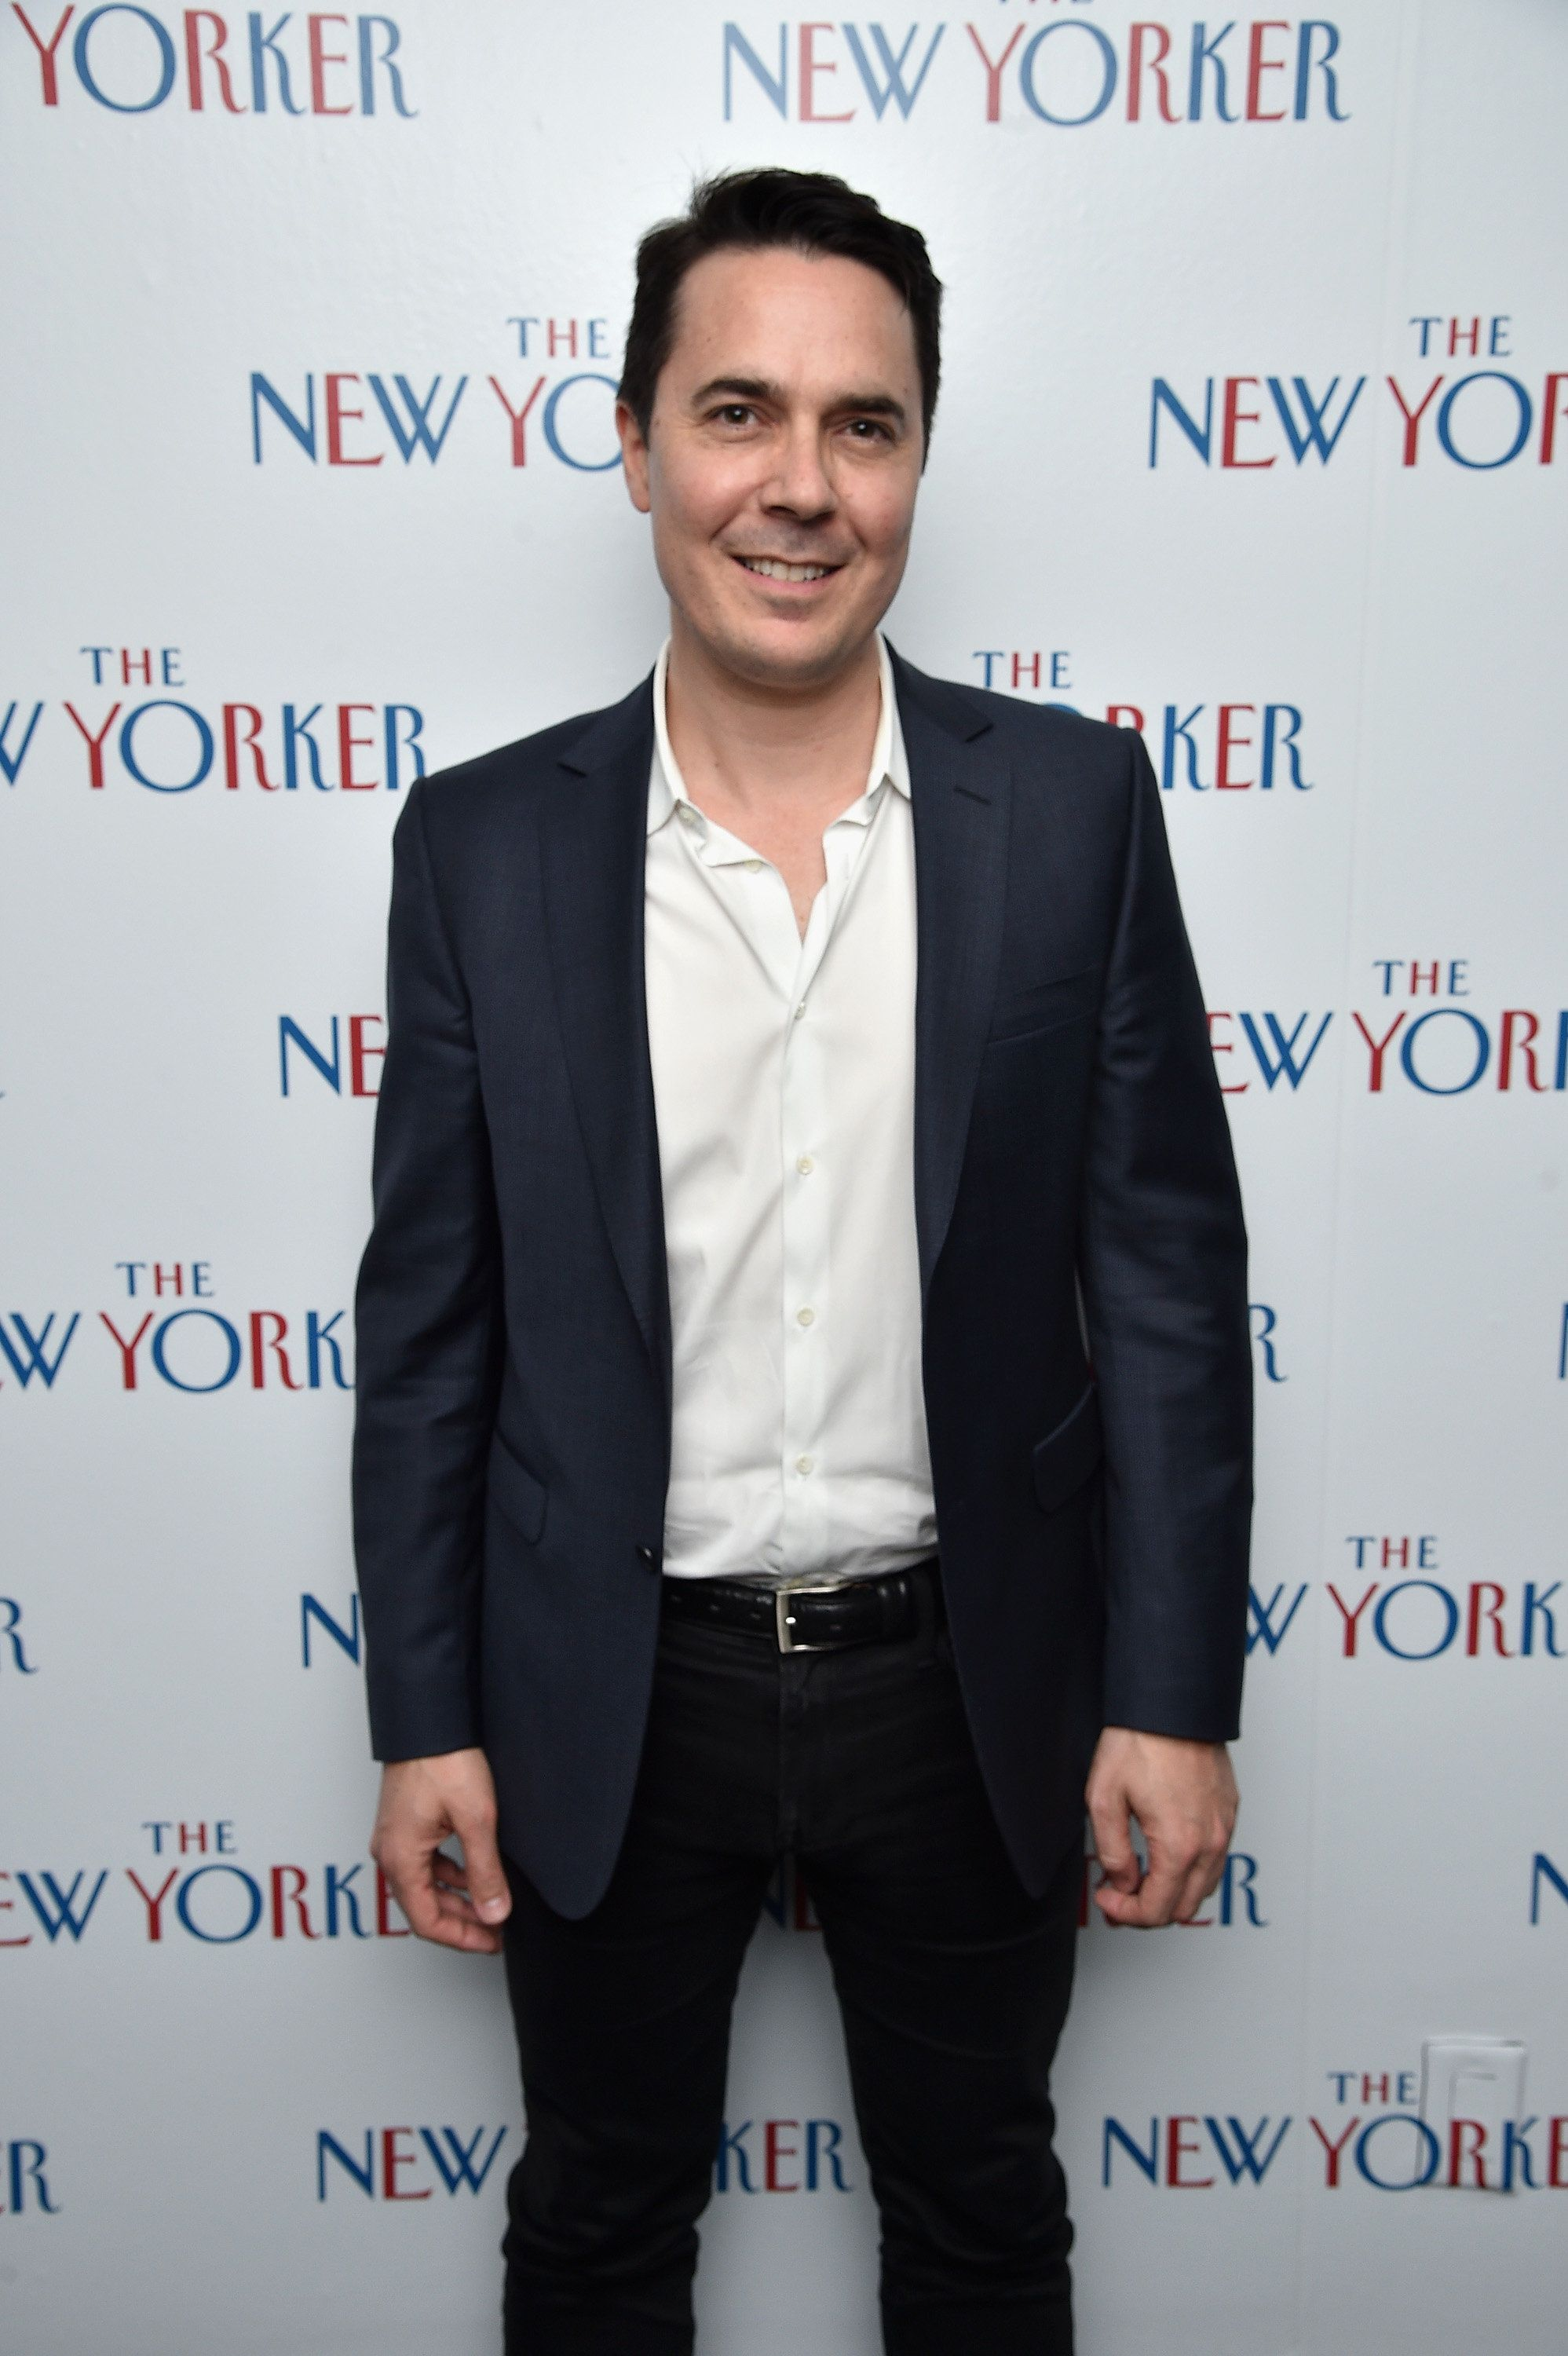 WASHINGTON, DC - APRIL 29:  Washington correspondent for The New Yorker Ryan Lizza attends The New Yorker's annual party kicking off The White House Correspondents' Association Dinner Weekend hosted by David Remnick at W Hotel Rooftop on April 29, 2016 in Washington, DC.  (Photo by Dimitrios Kambouris/Getty Images for The New Yorker)